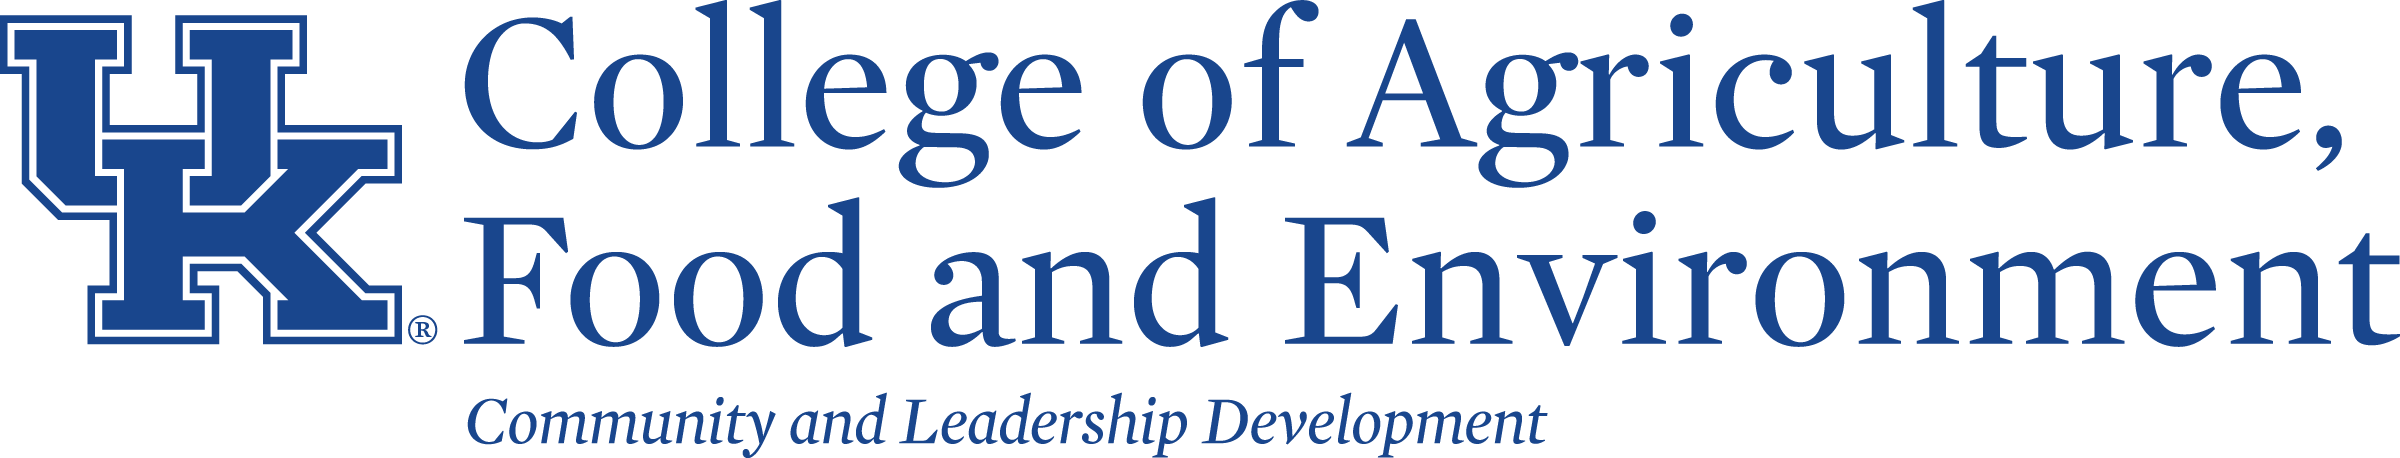 UK Community and Leadership Development logo